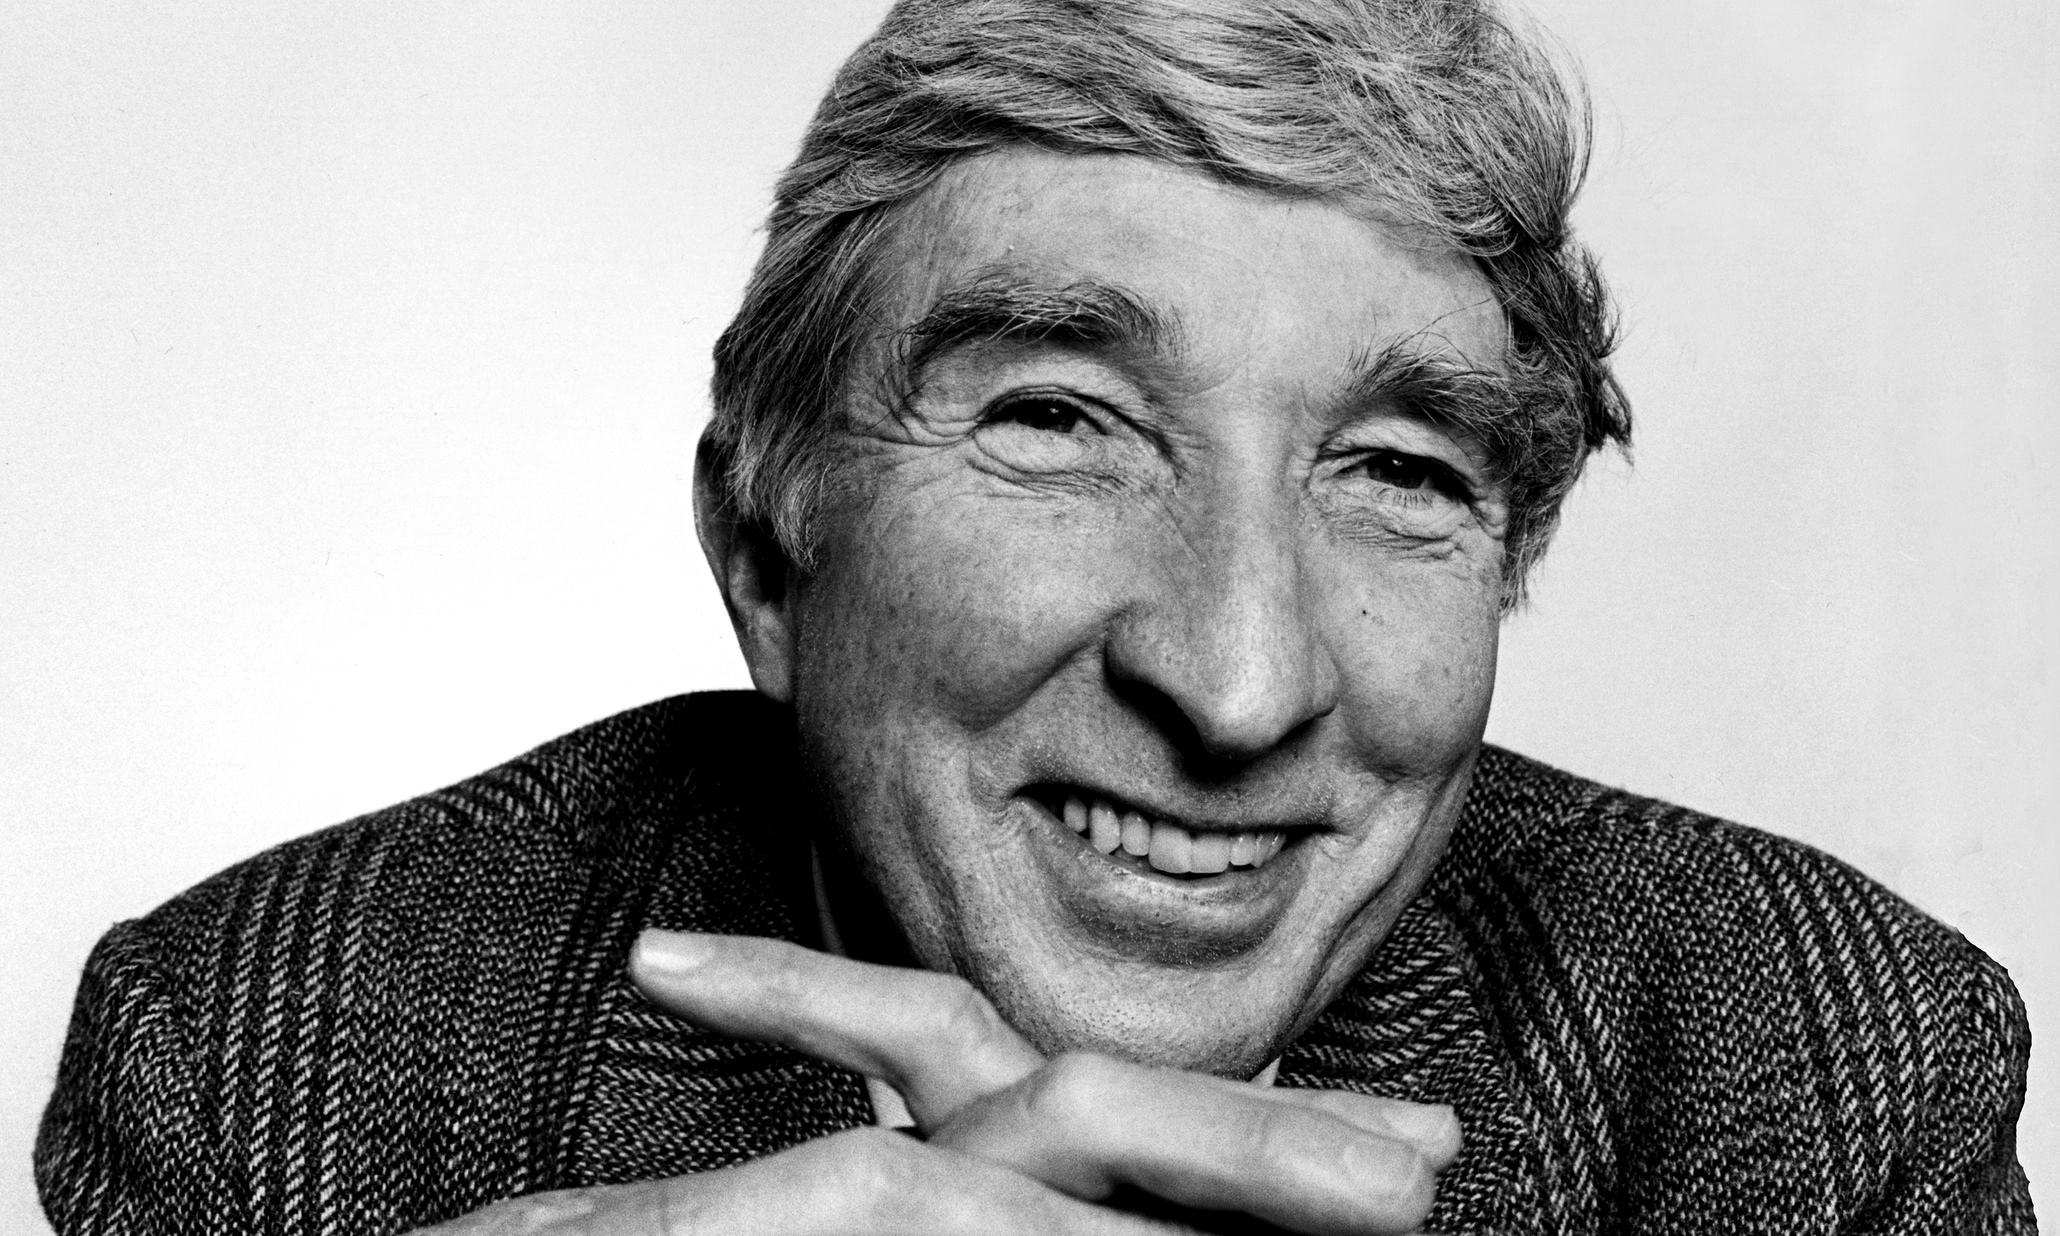 a biography of john hoyer updike John hoyer updike was born on march 18, 1932, in shillington, pennsylvania his father, wesley, was a high school mathematics teacher, the model for several sympathetic father figures in updike's early works because updike's mother.